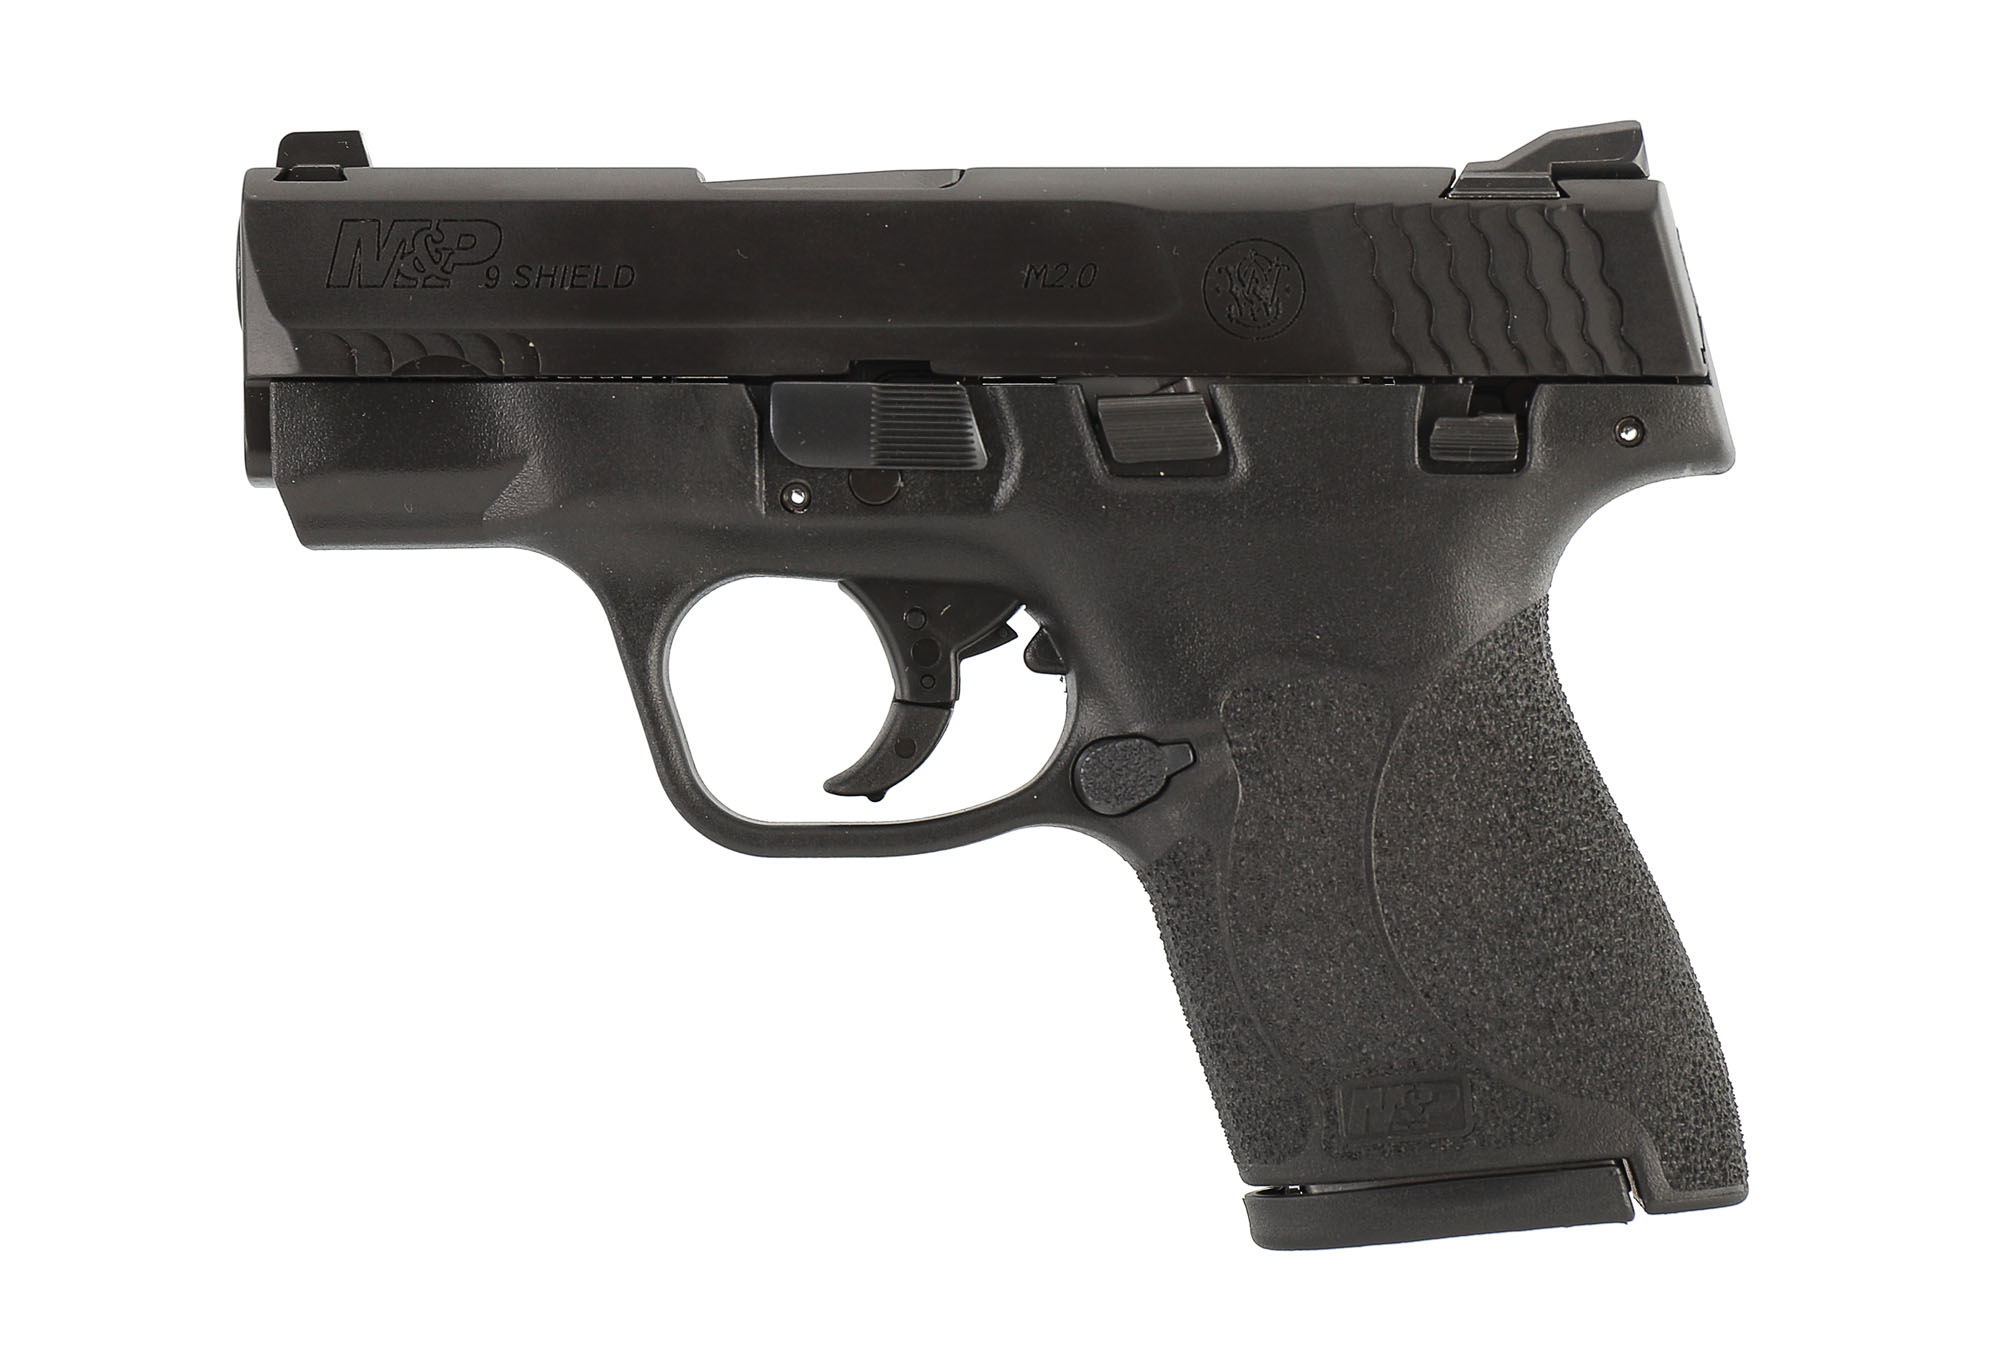 Pistole Smith & Wesson M&P 9 Shield M2.0 (pojistka)